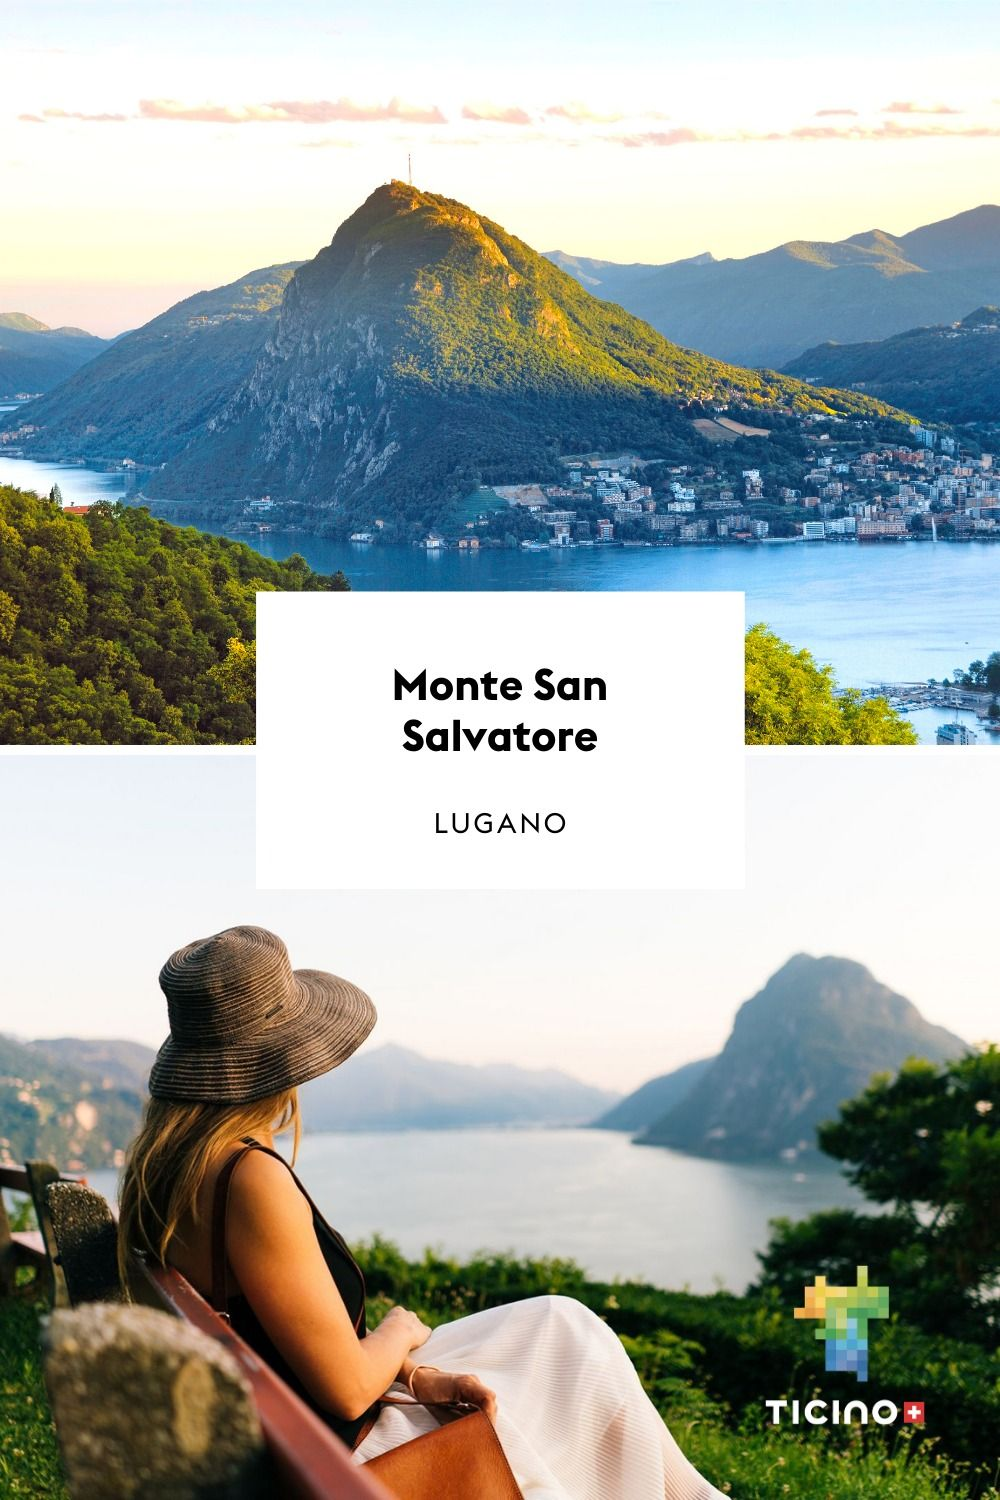 Monte San Salvatore A Place To Recharge Your Batteries San Lugano Region